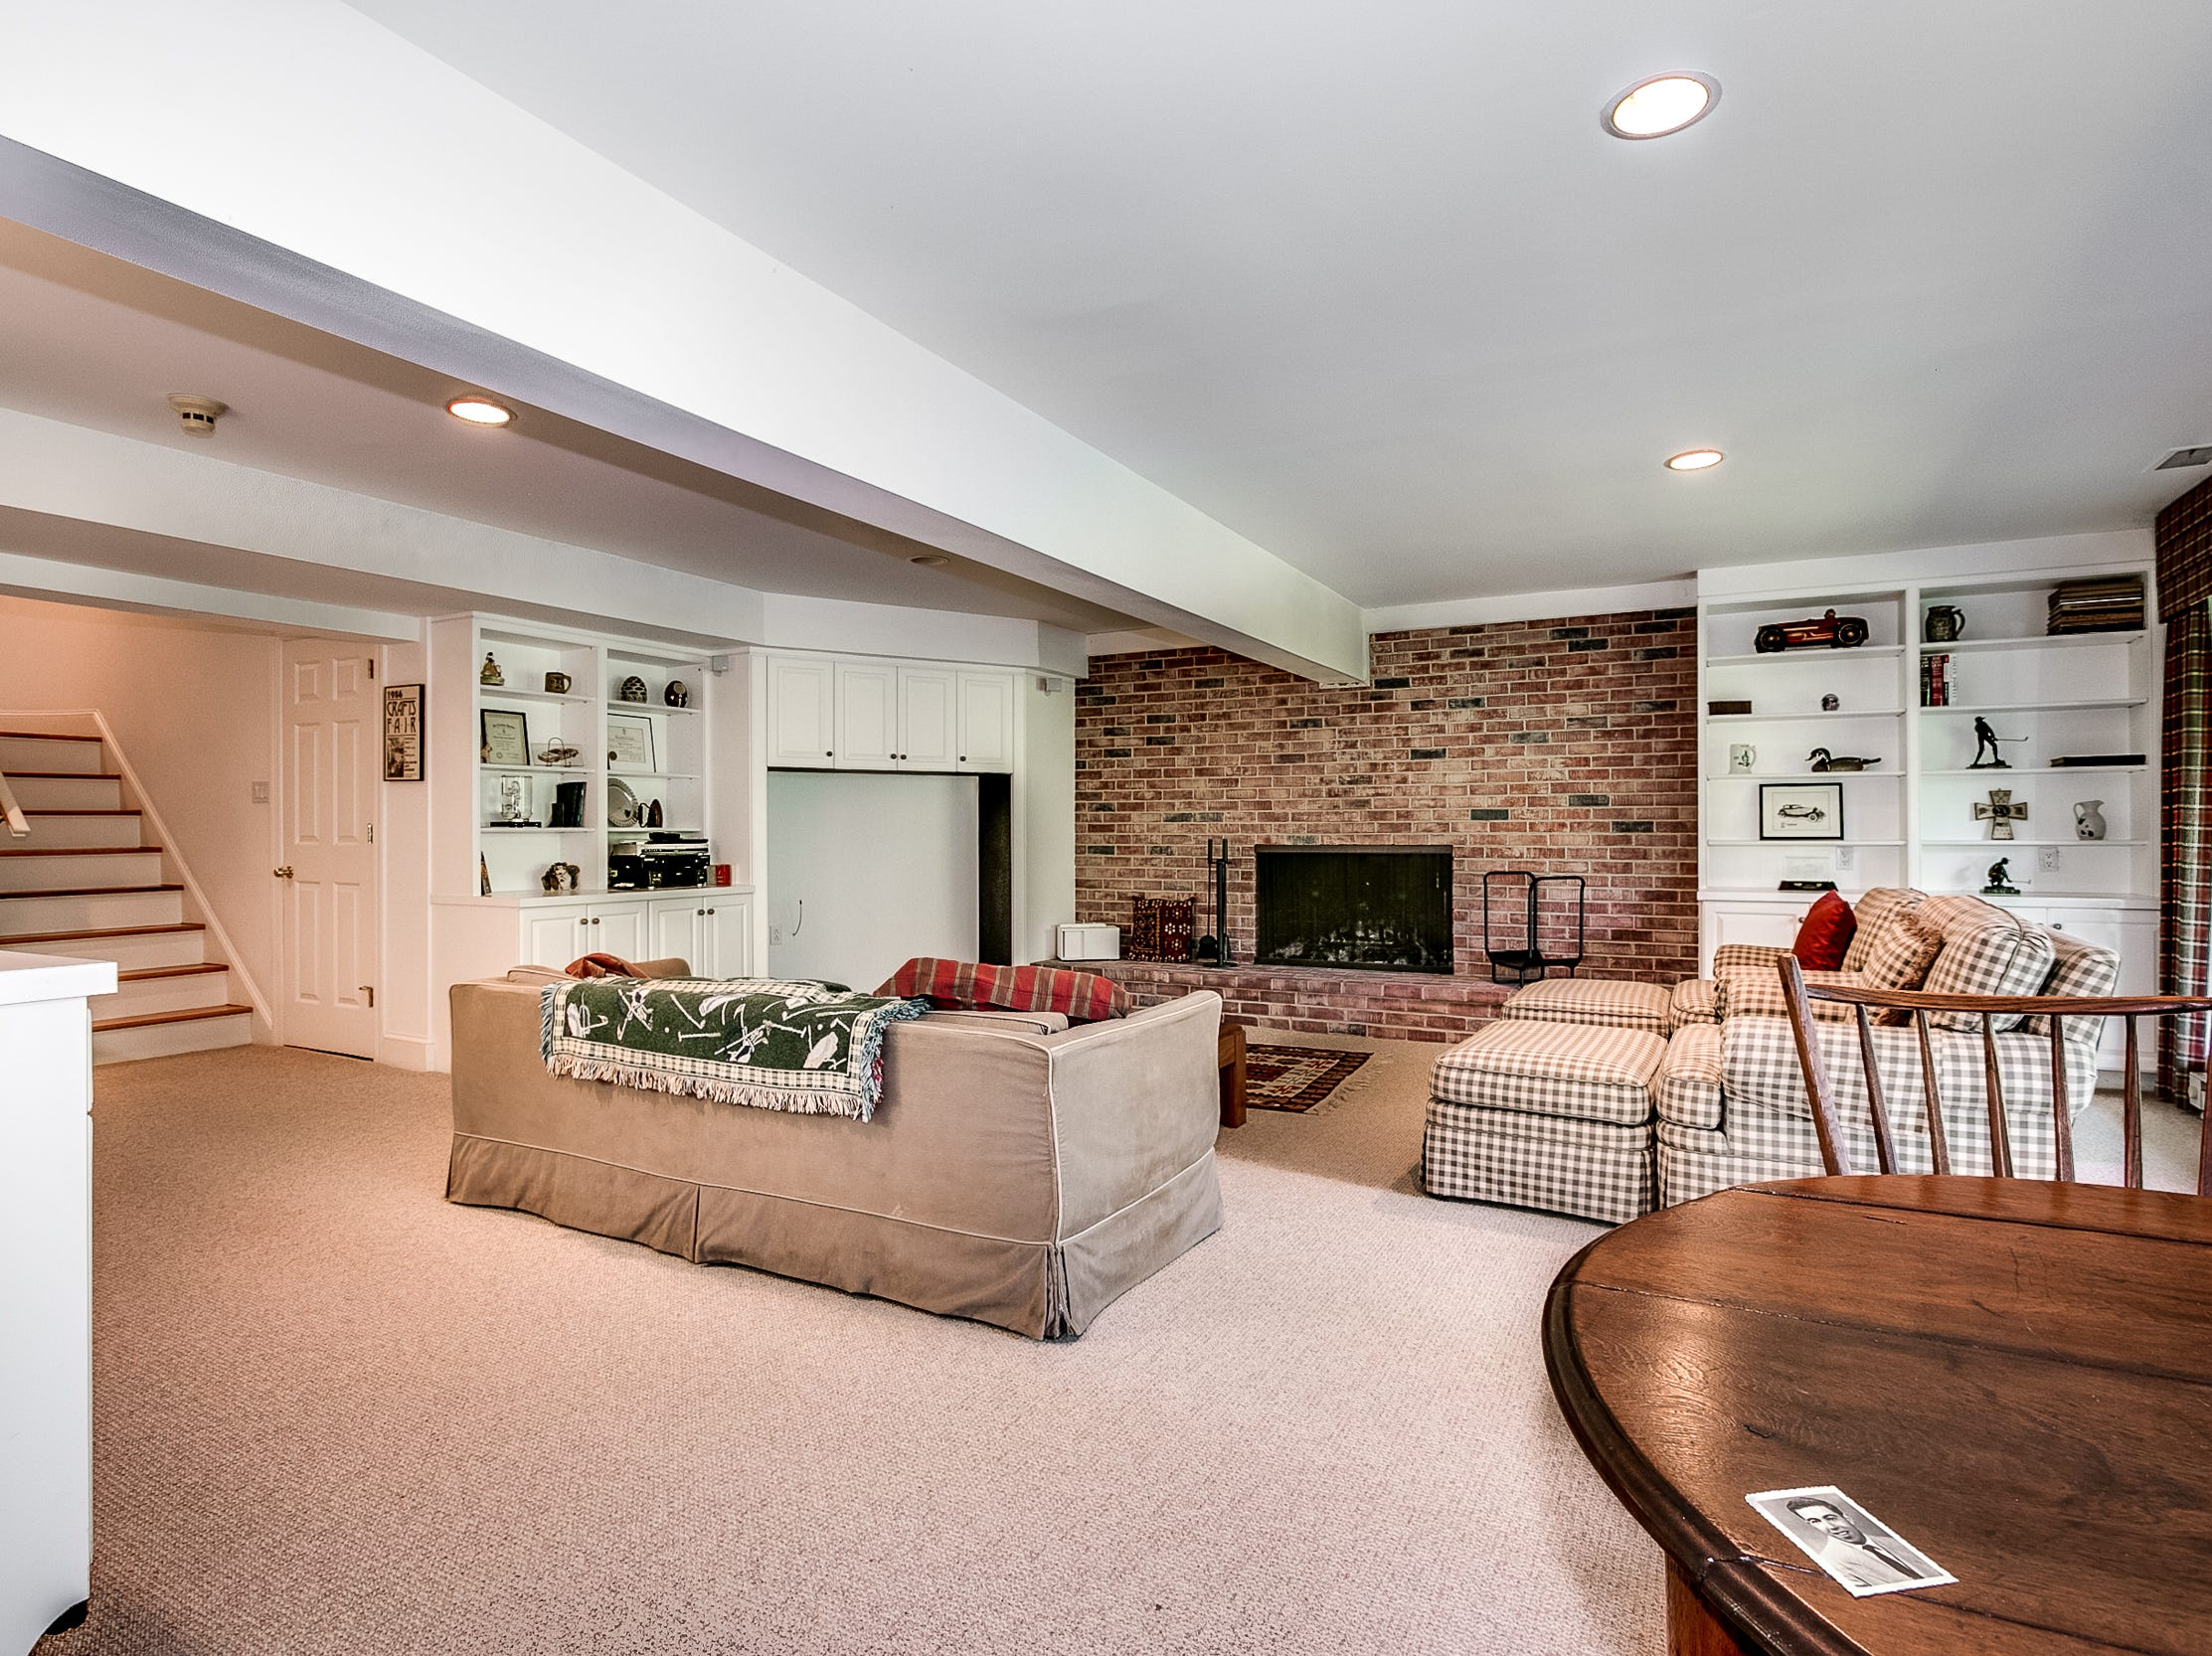 The lower level family room at 7 Brandywine Falls Road in Wilmington has a brick fireplace, built-in cabinetry and a kitchenette.